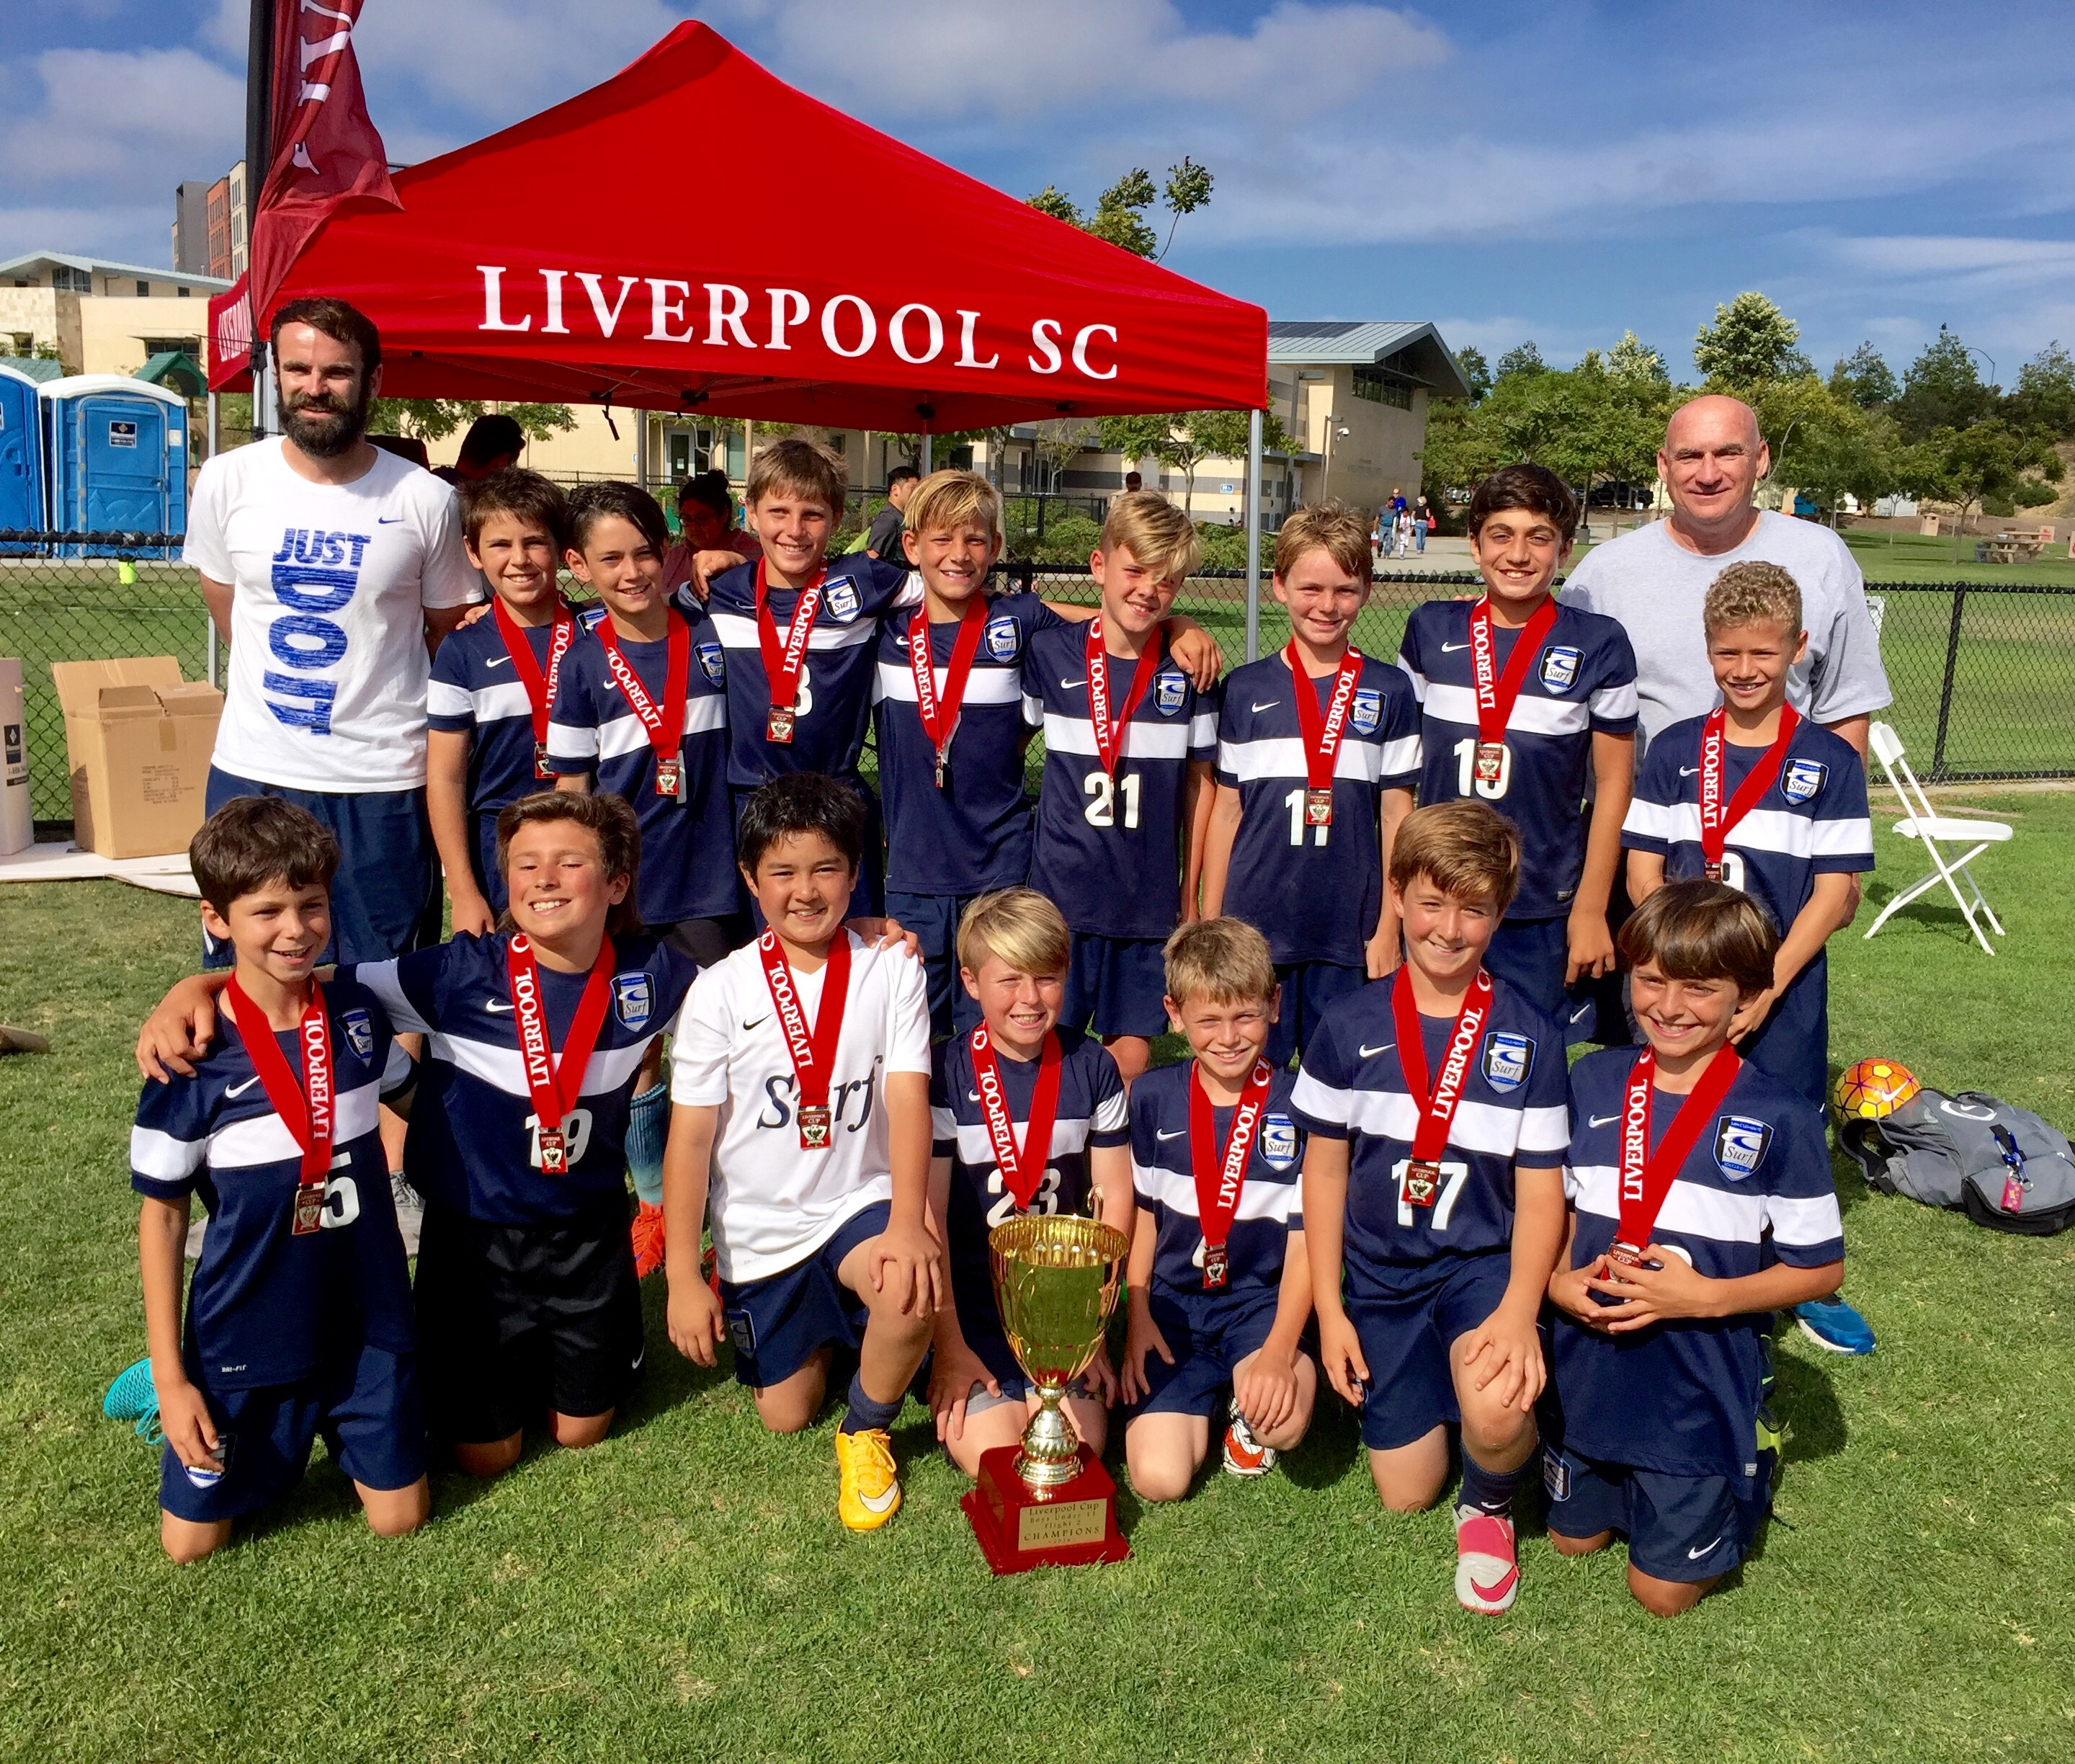 The SC Surf Boys 2005's team won its division at the Liverpool Cup in San Diego on June 4. Photo: Courtesy